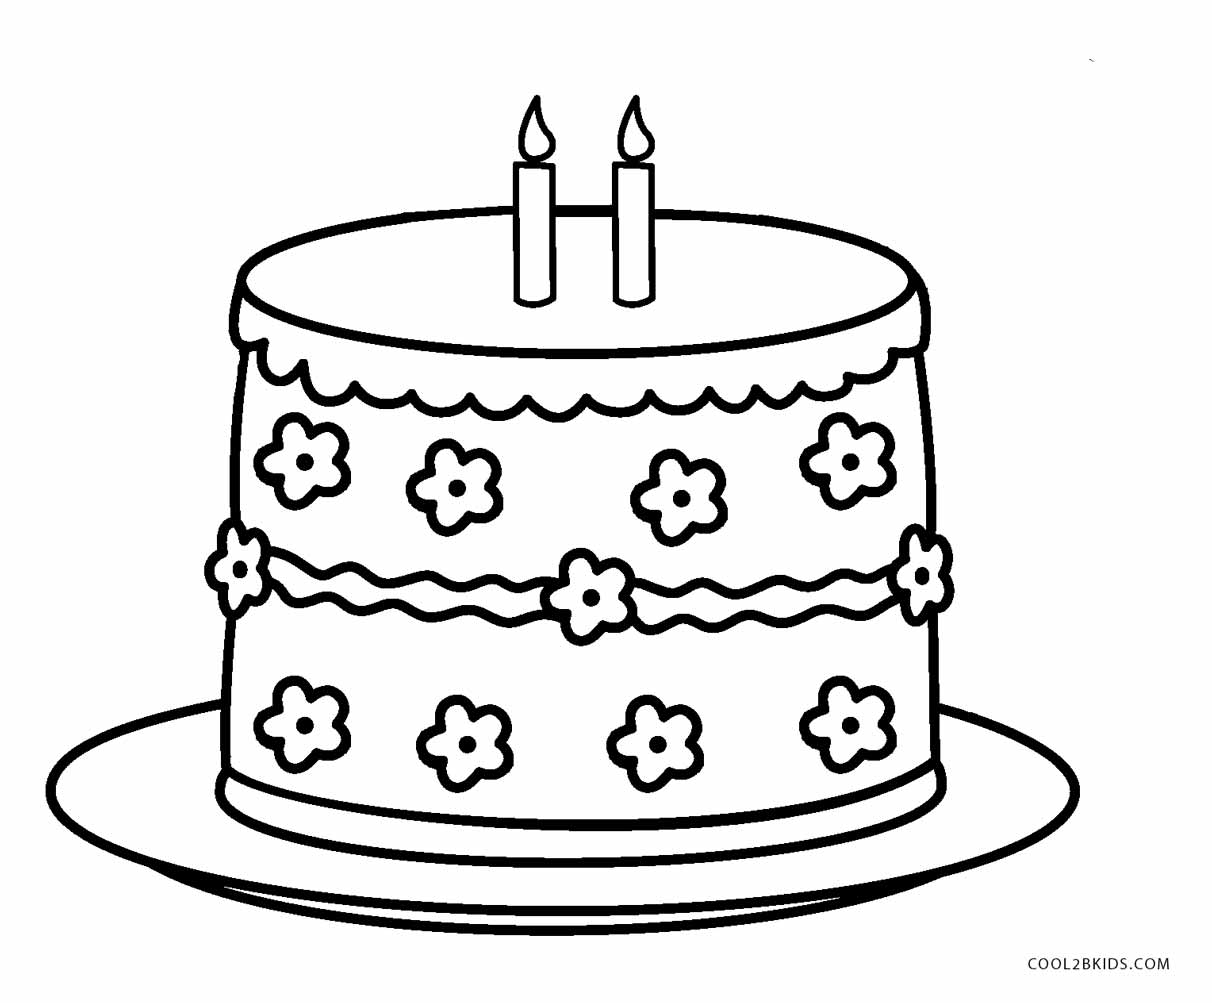 cake printables for coloring free printable birthday cake coloring pages for kids printables coloring cake for 1 1